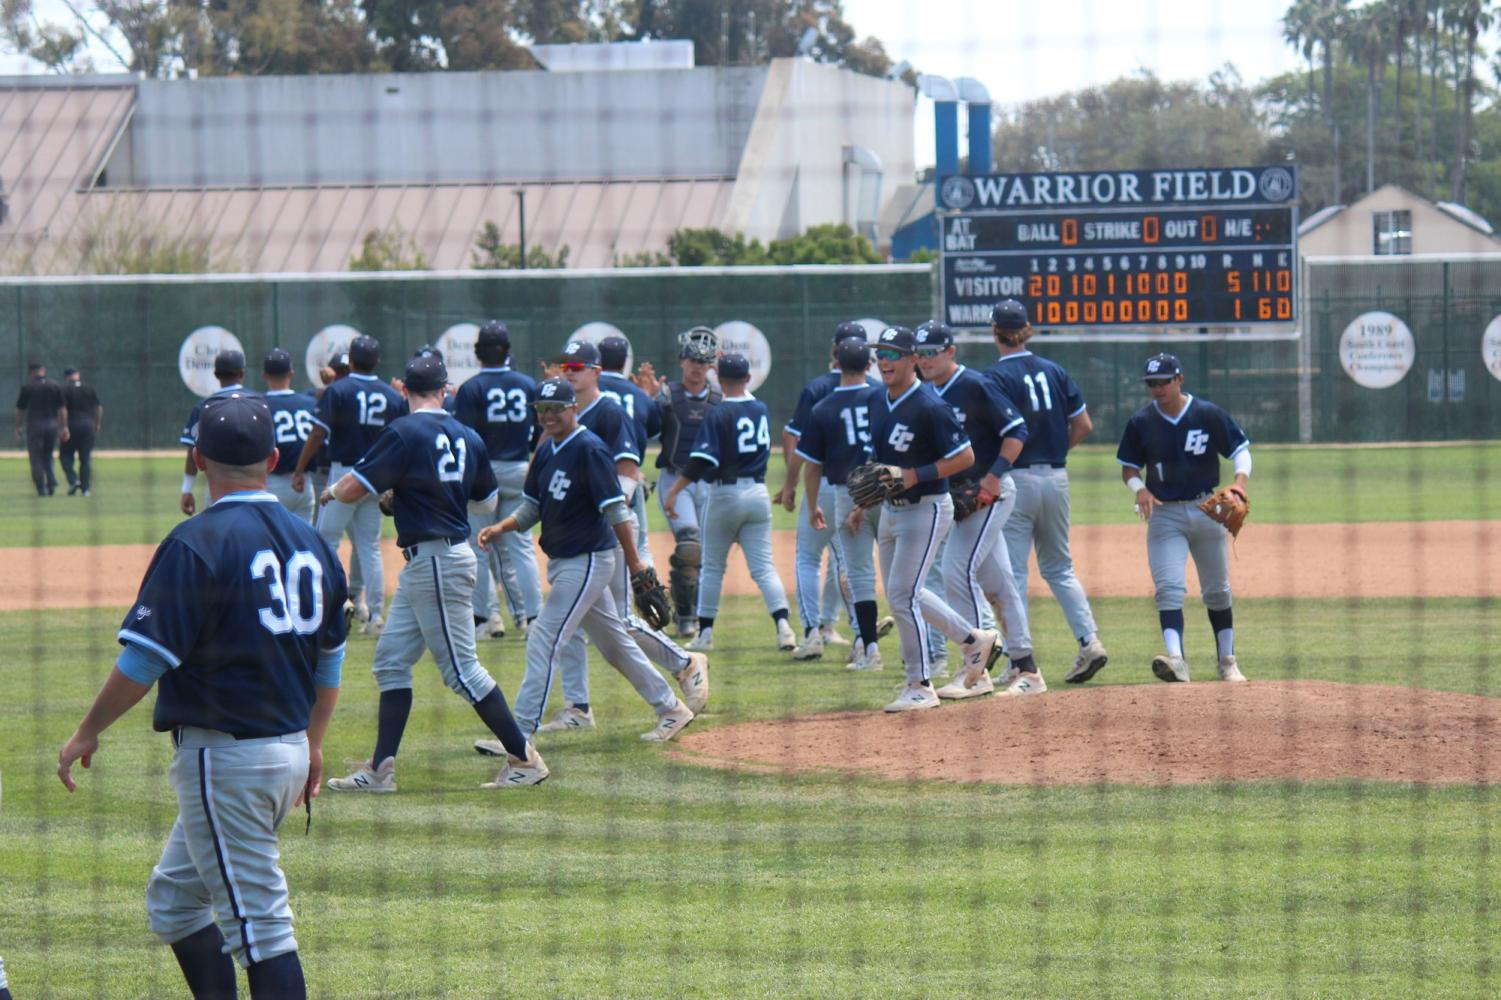 The El Camino Warriors celebrate following their Game 2 victory and series sweep of the Pasadena City Lancers Saturday, May 4, at Warrior Field. The Warriors scored five runs on 11 hits and committed no errors. Photo credit: Kealoha Noguchi